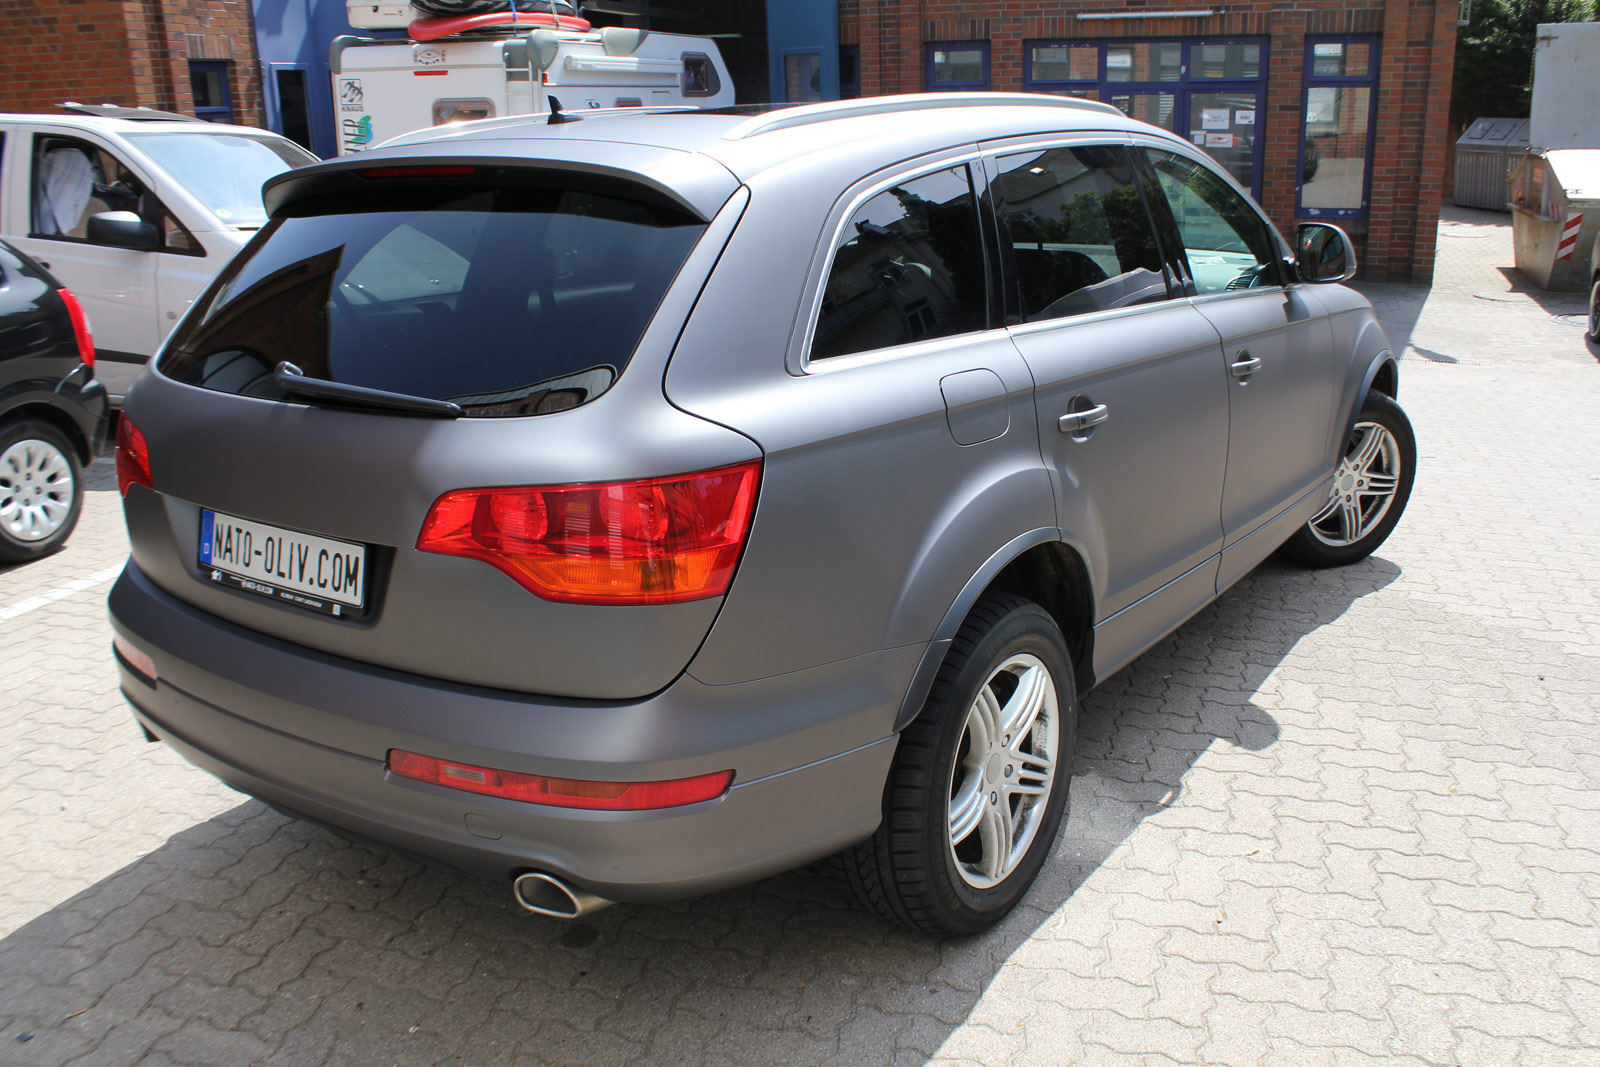 Heckansicht des Q7 in anthrazit matt metallic Folie.